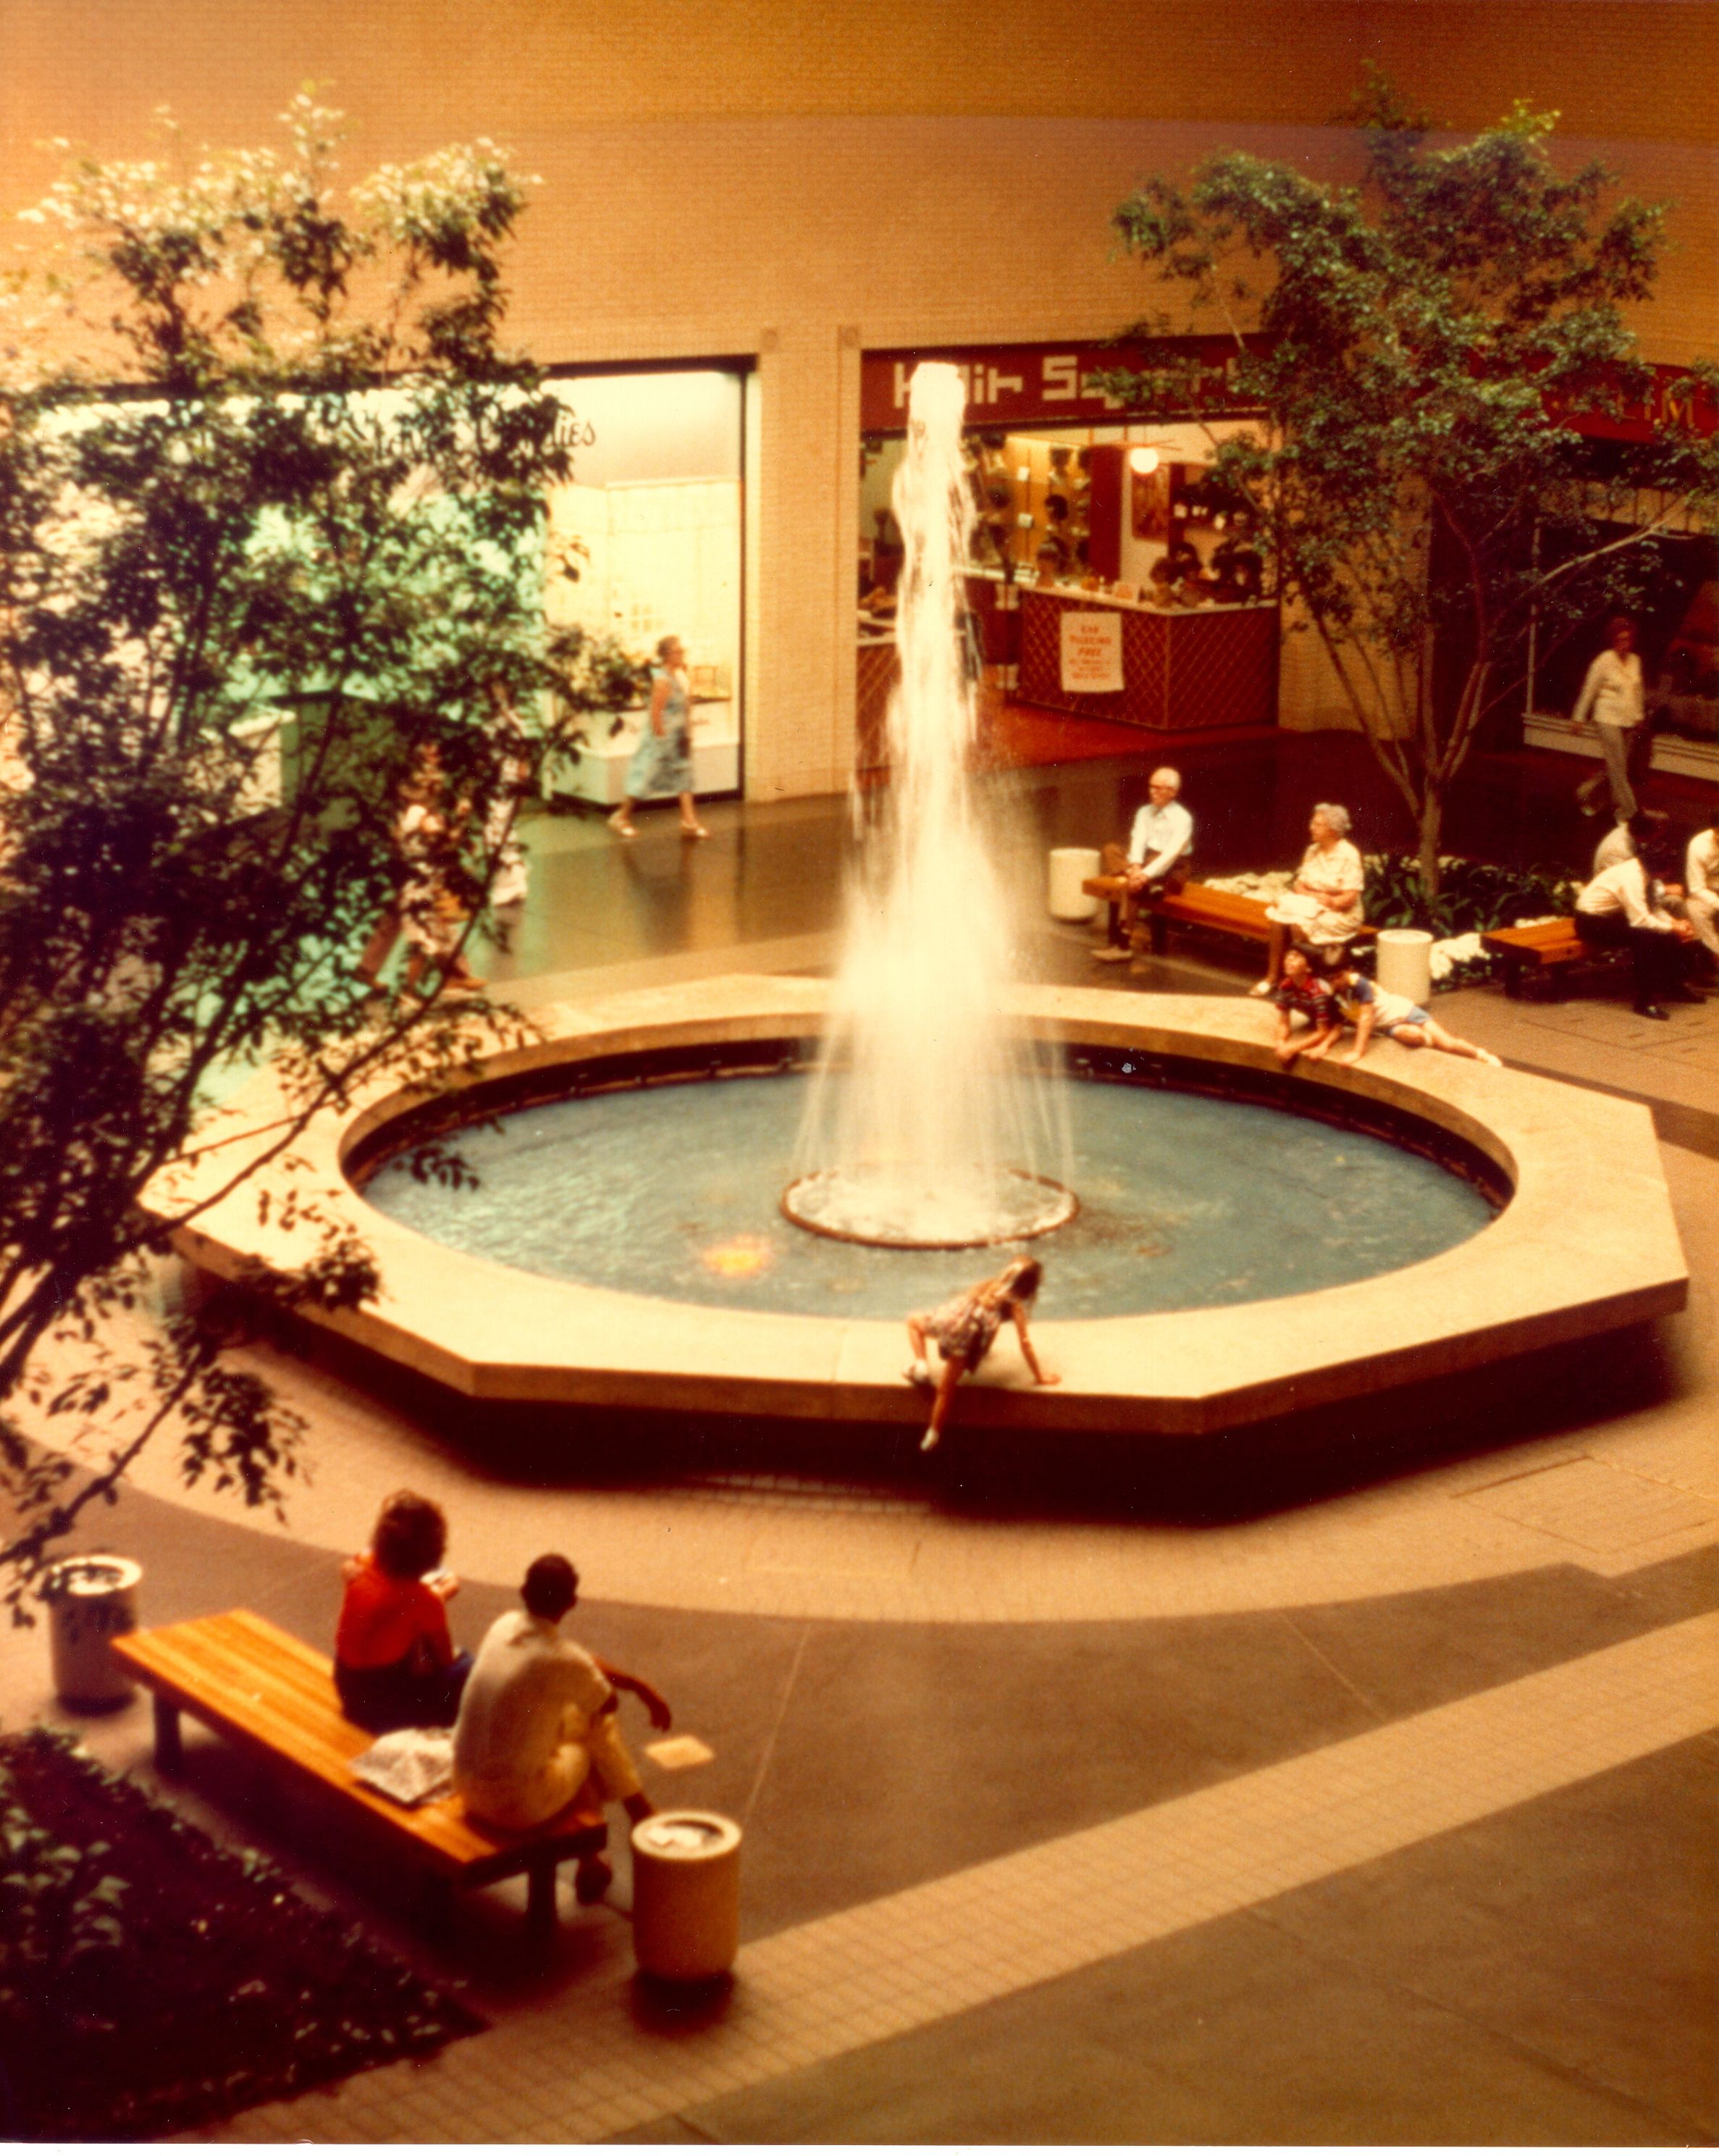 Circa 1980 Dallas Shopping Vintage Mall Fountain